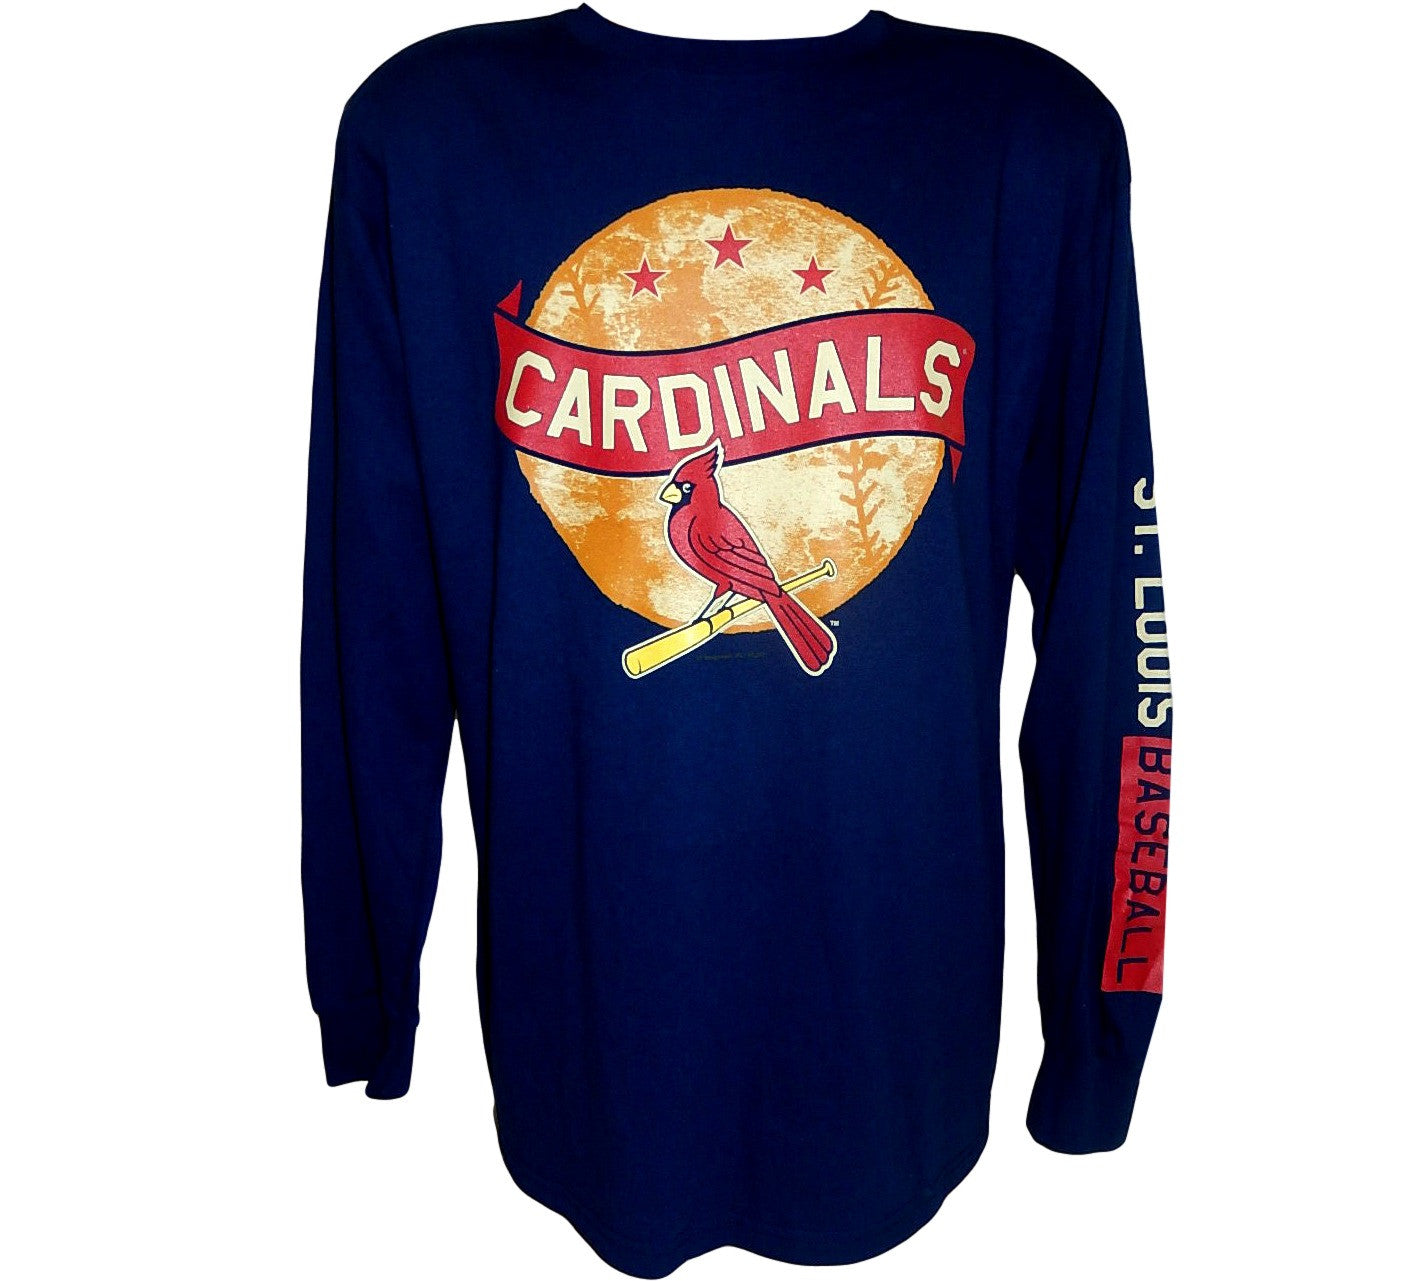 Cardinals Retro Long Sleeve - And Still